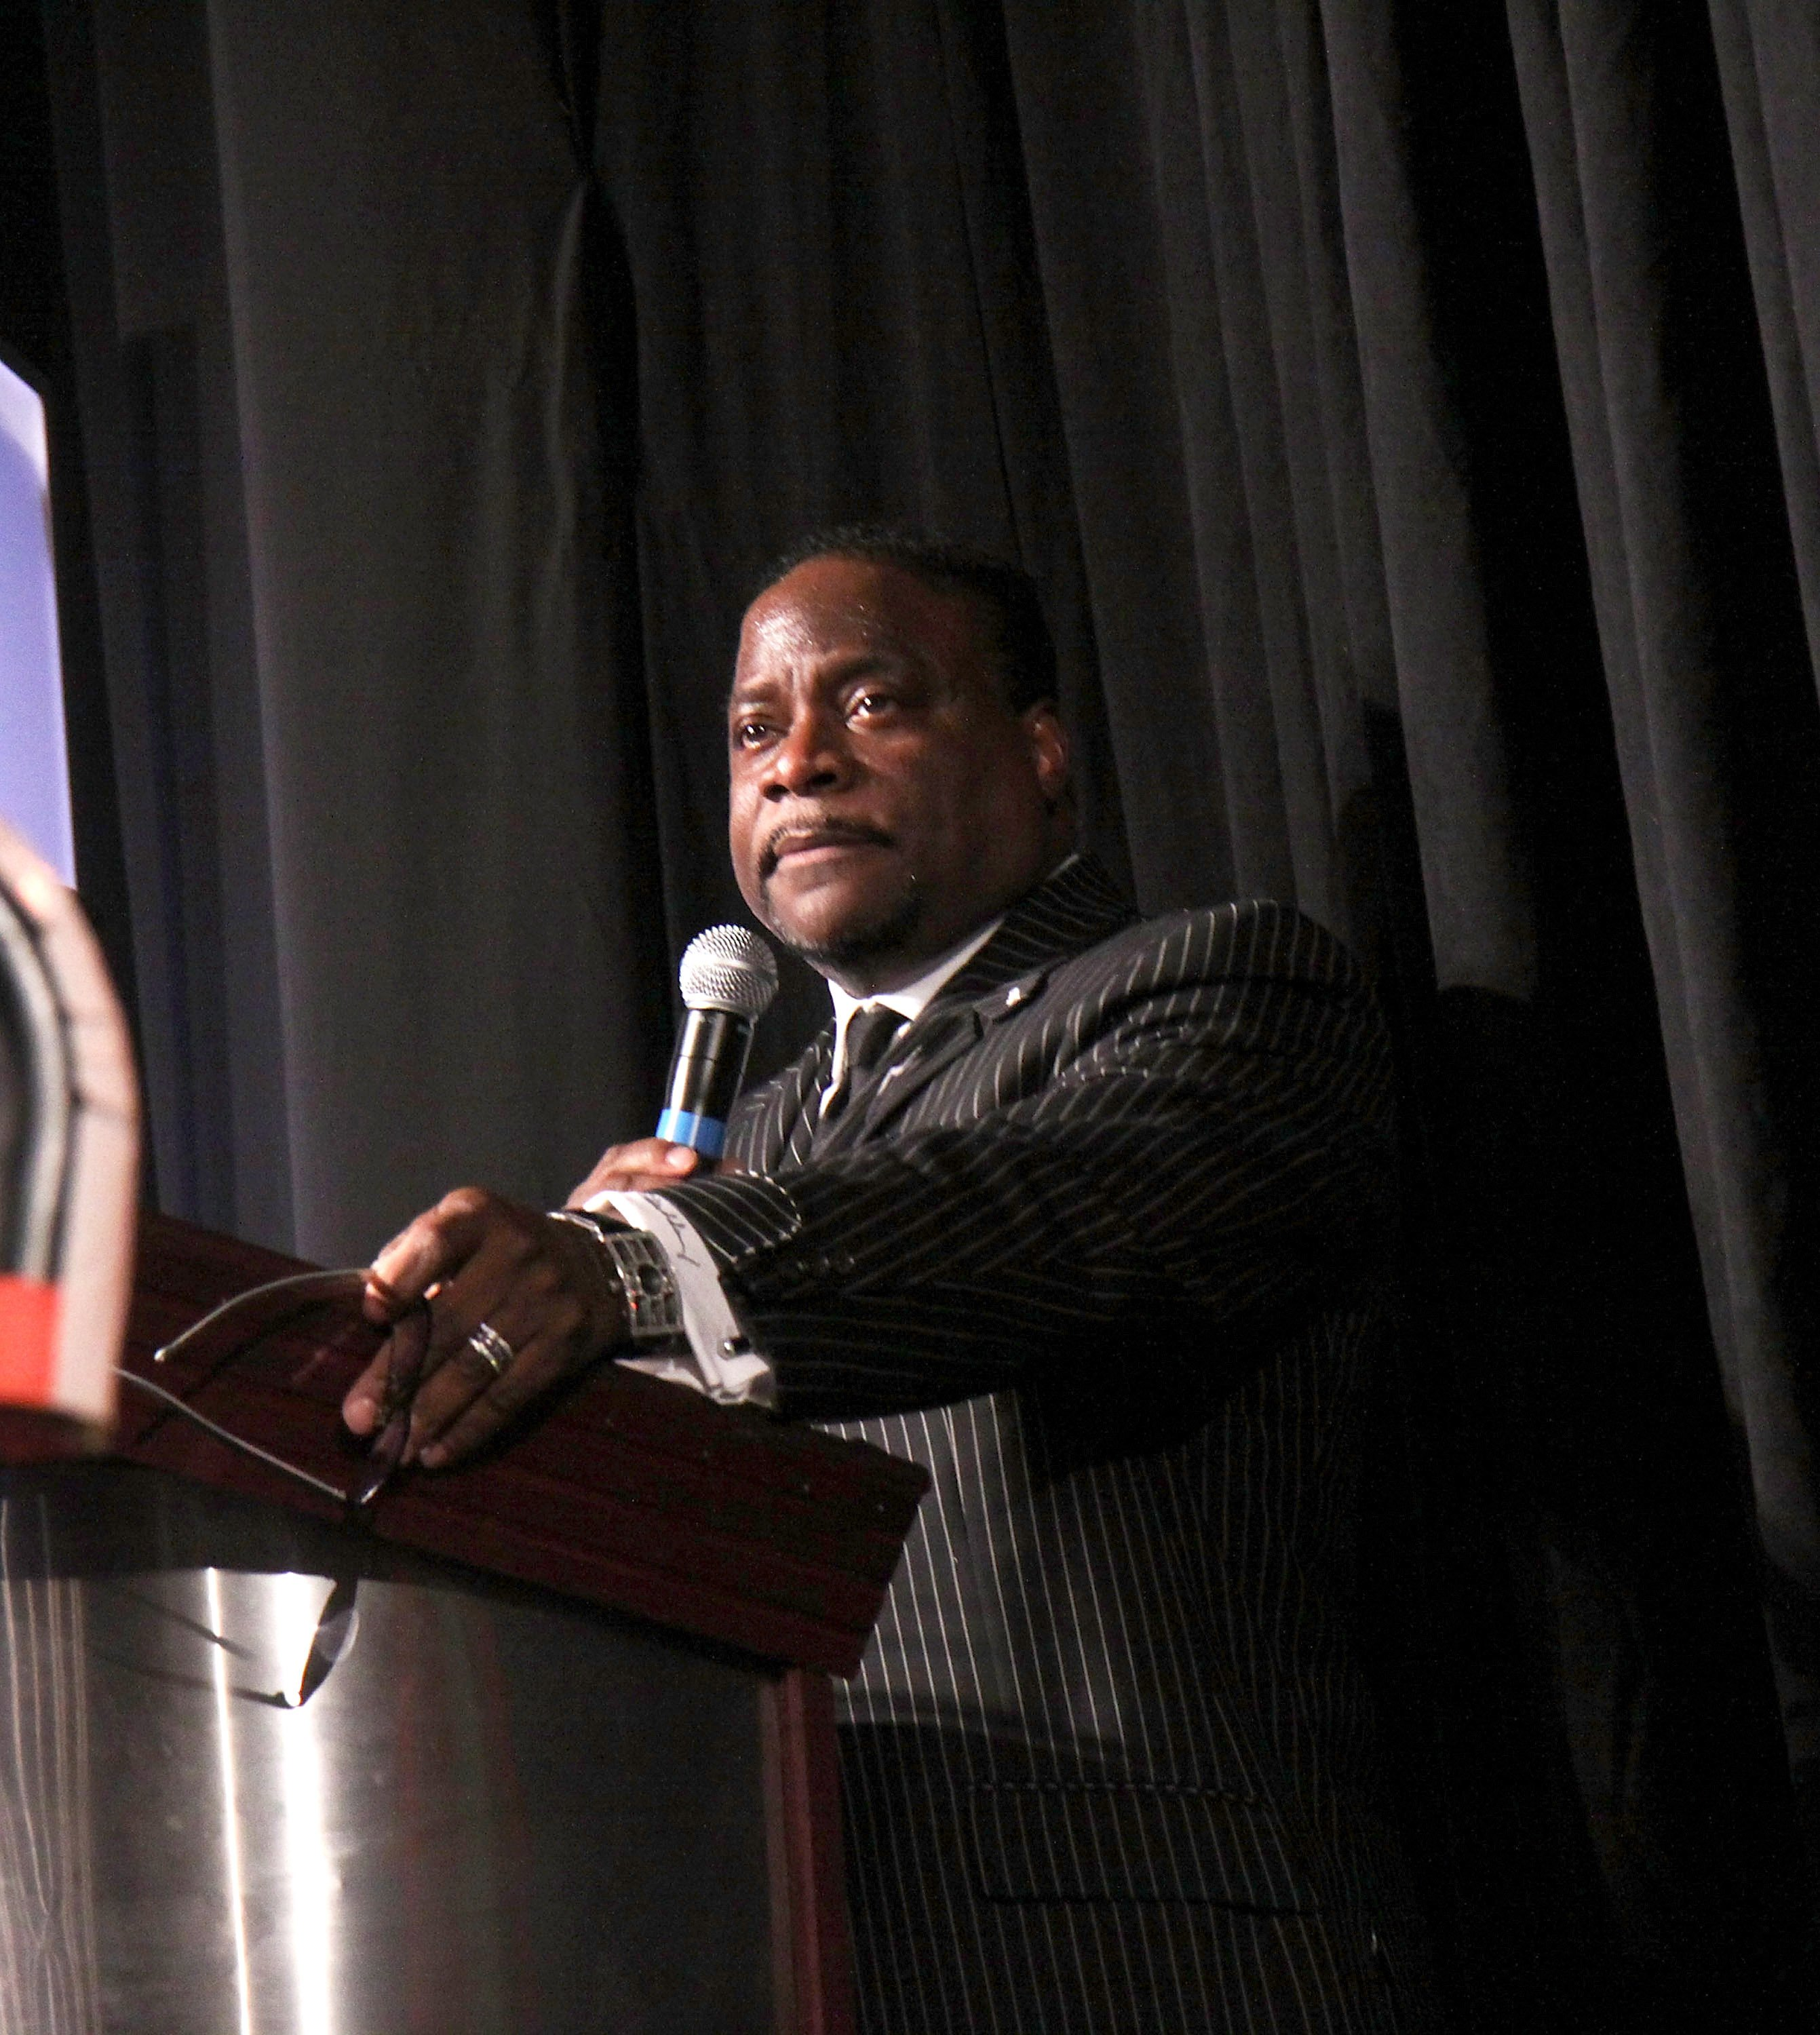 Bishop Eddie Long at the 2009 Essence Music Festival presented by Coca-Cola at the Louisiana Superdome on July 5, 2009 | Photo: Getty Images